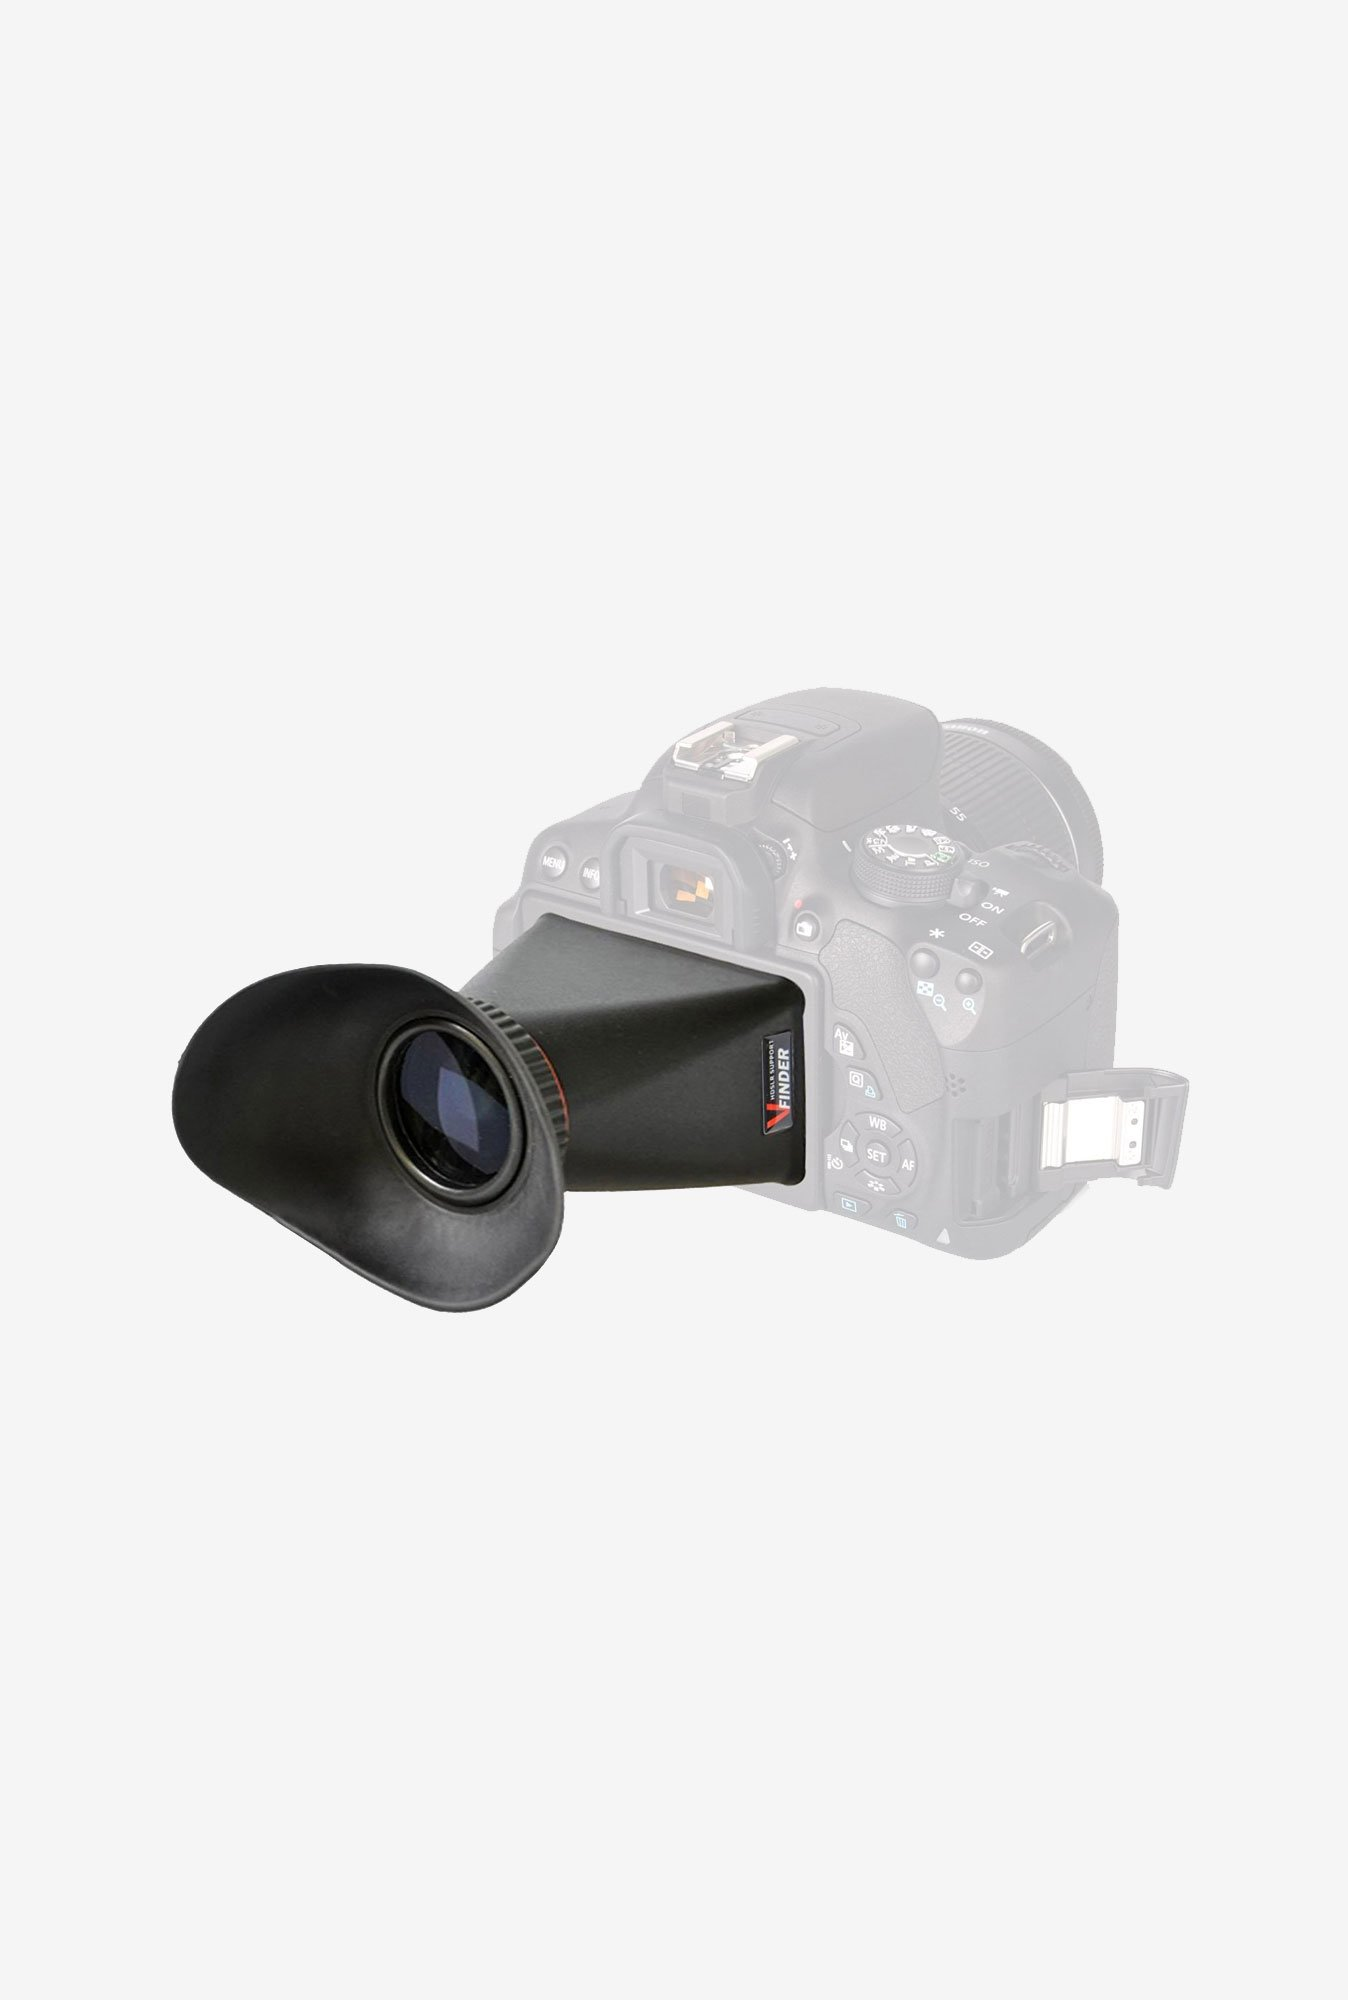 MegaGear DSLR LCD Screen Viewfinder for Canon T5i